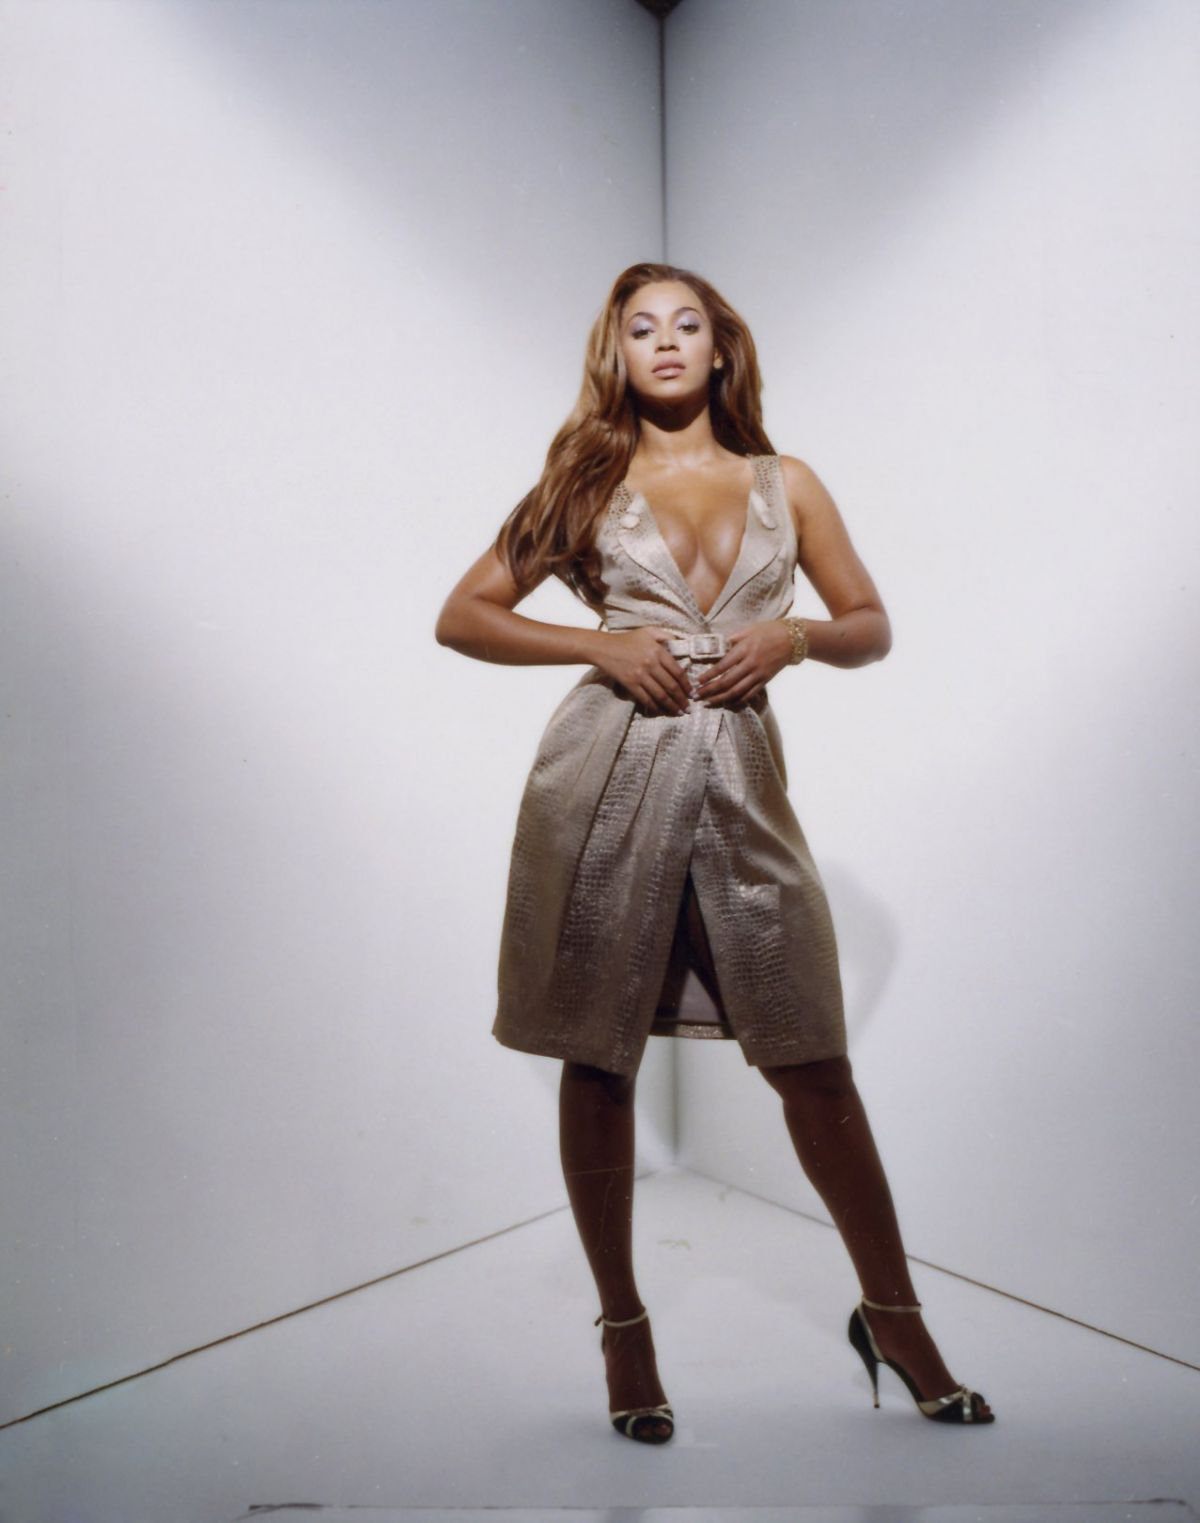 beyonce-naked-wallpapers